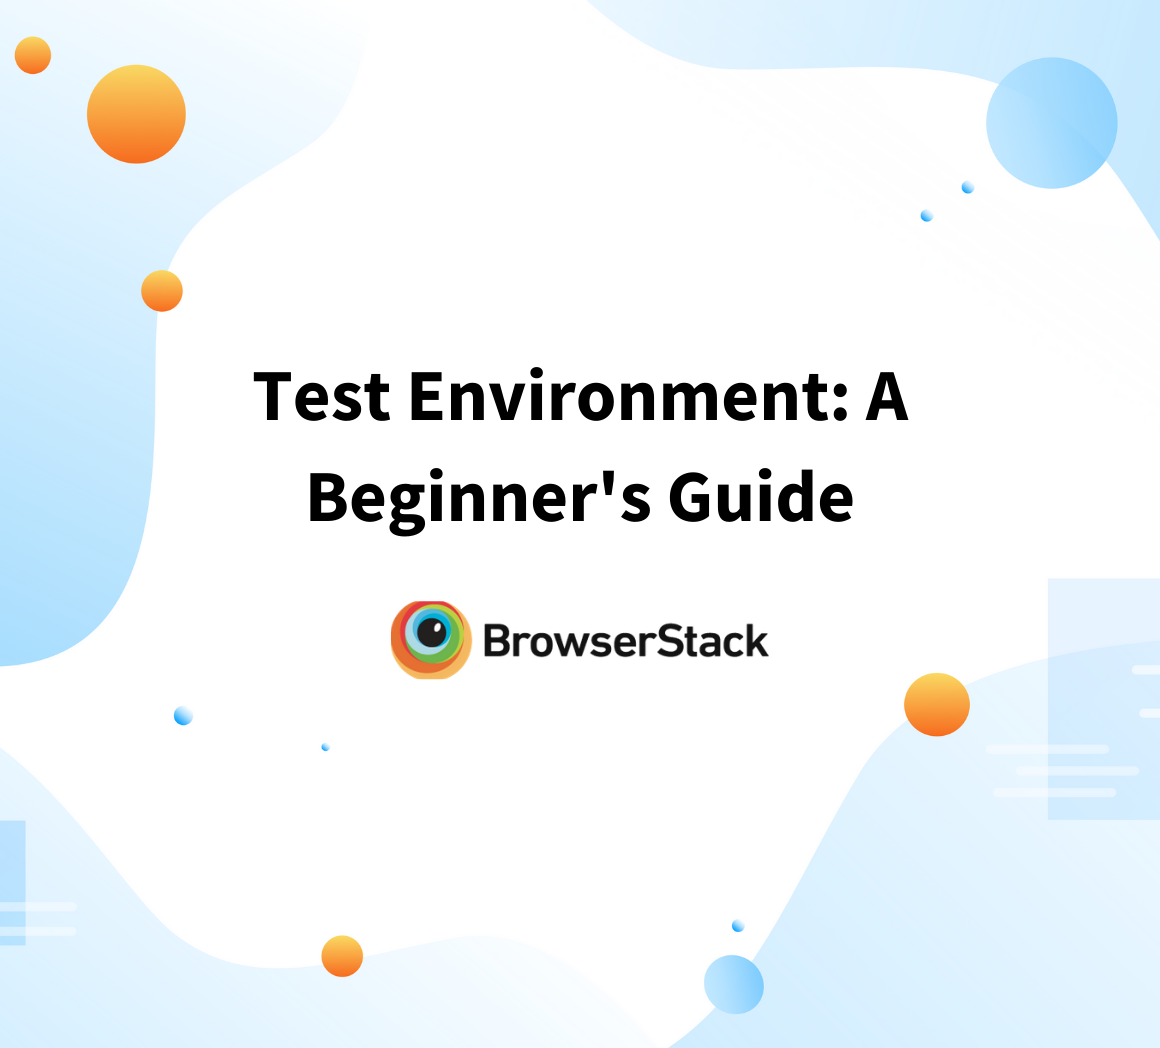 Basics of Test Environment